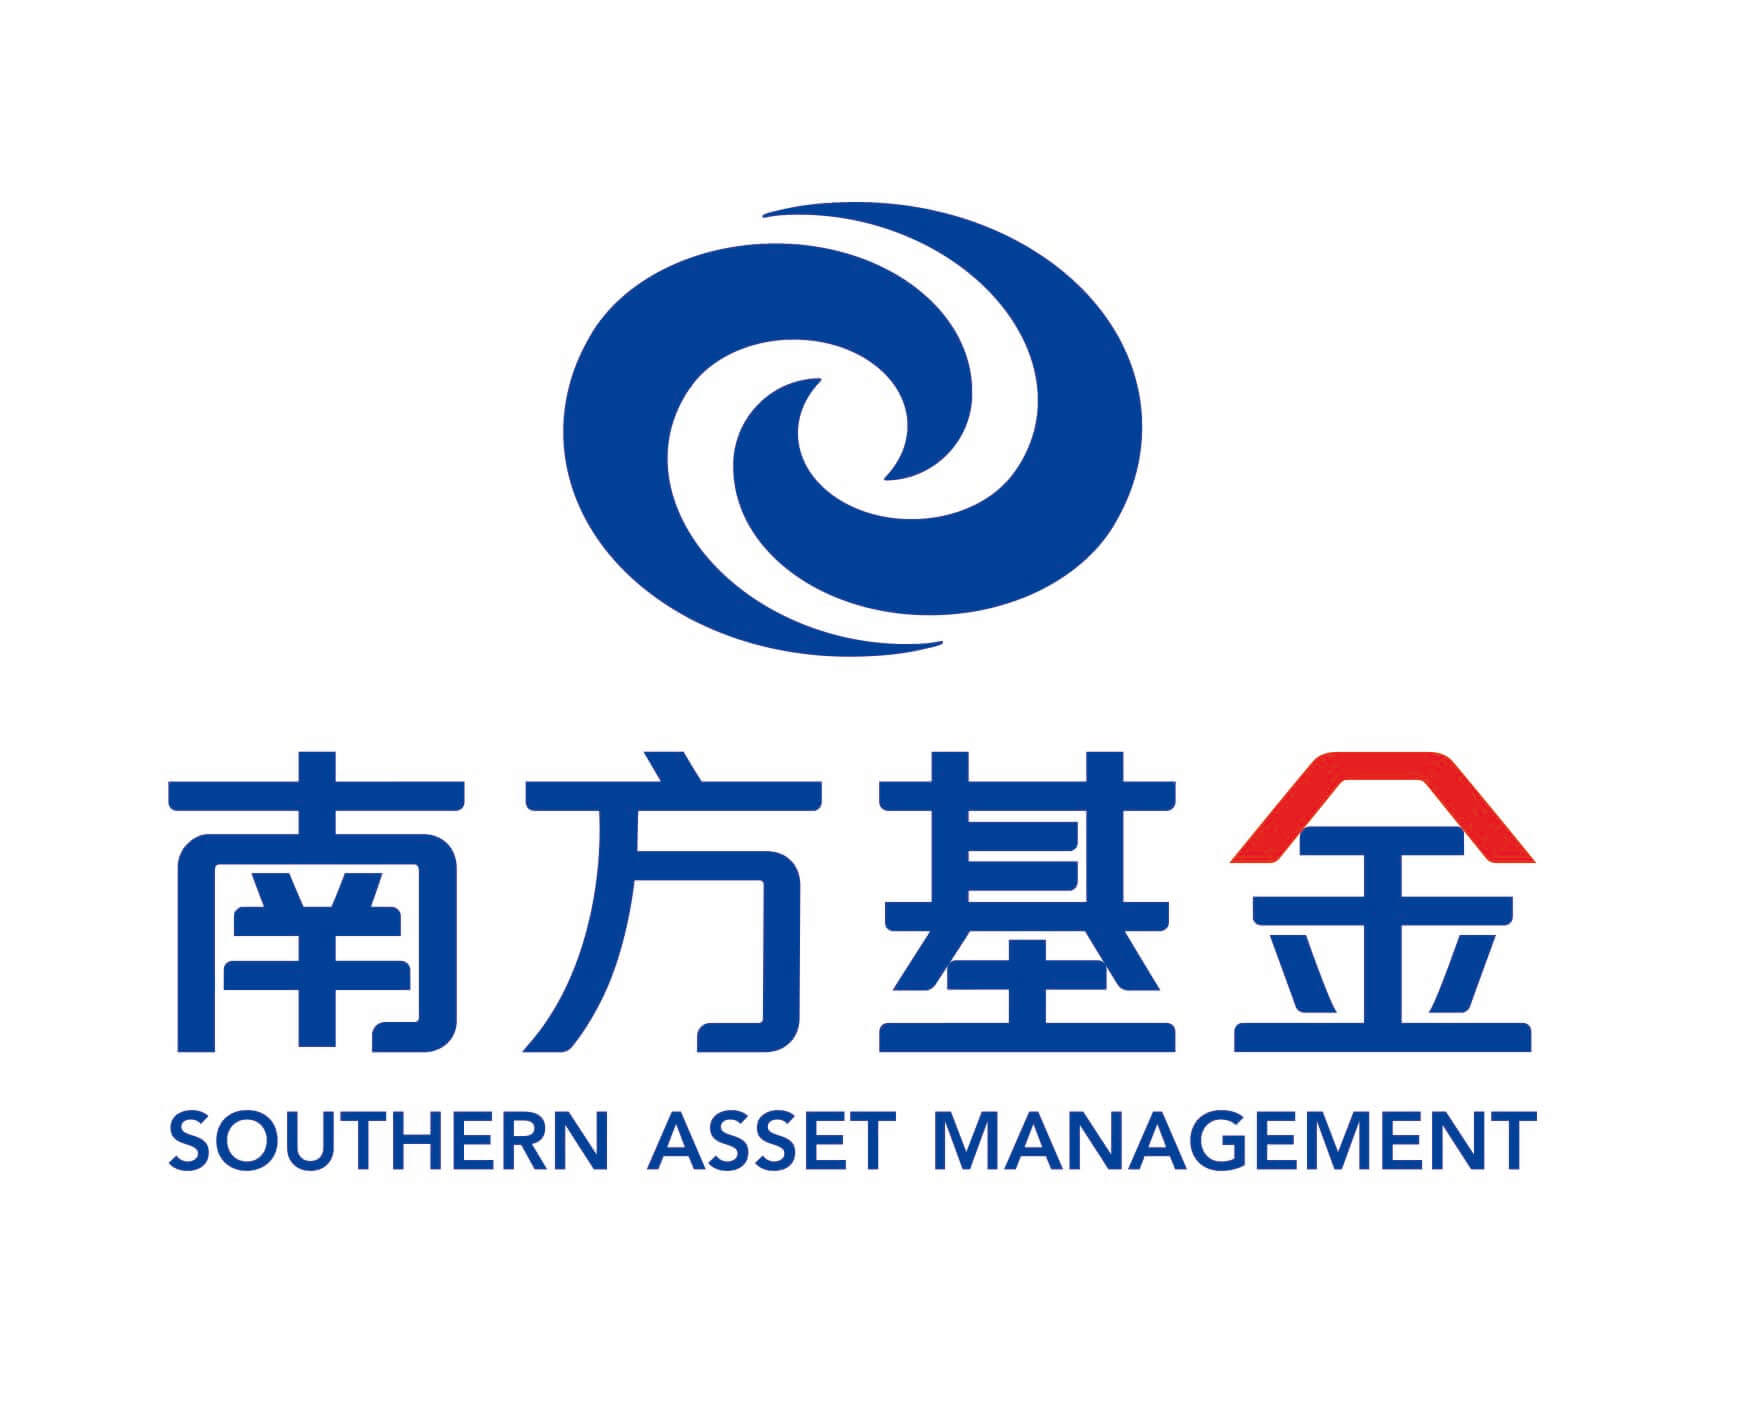 Southern Asset Management